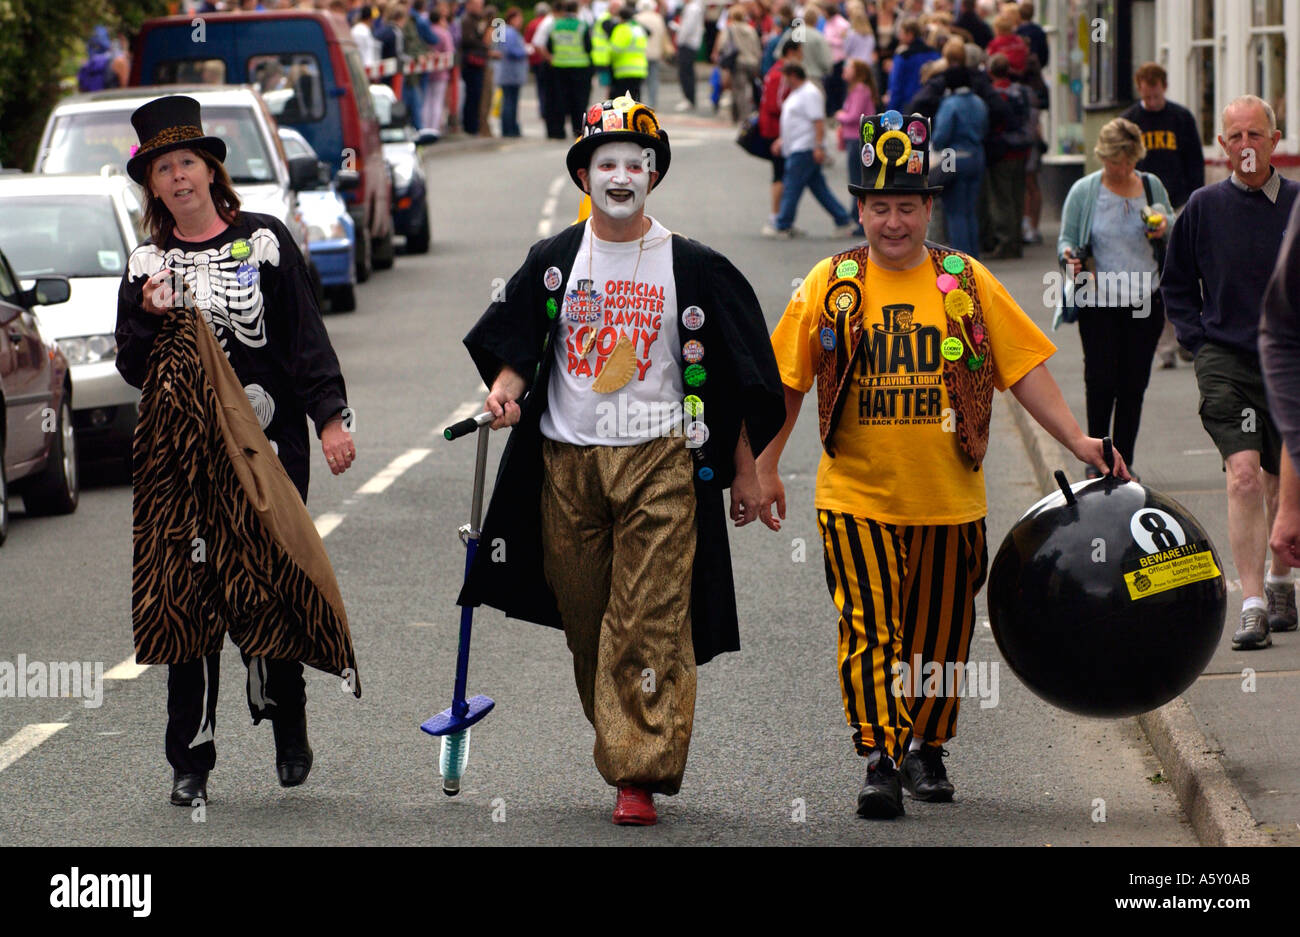 Monster Raving Loony party members at the annual Man v Horse race in Llanwrtyd Wells Powys Wales UK - Stock Image